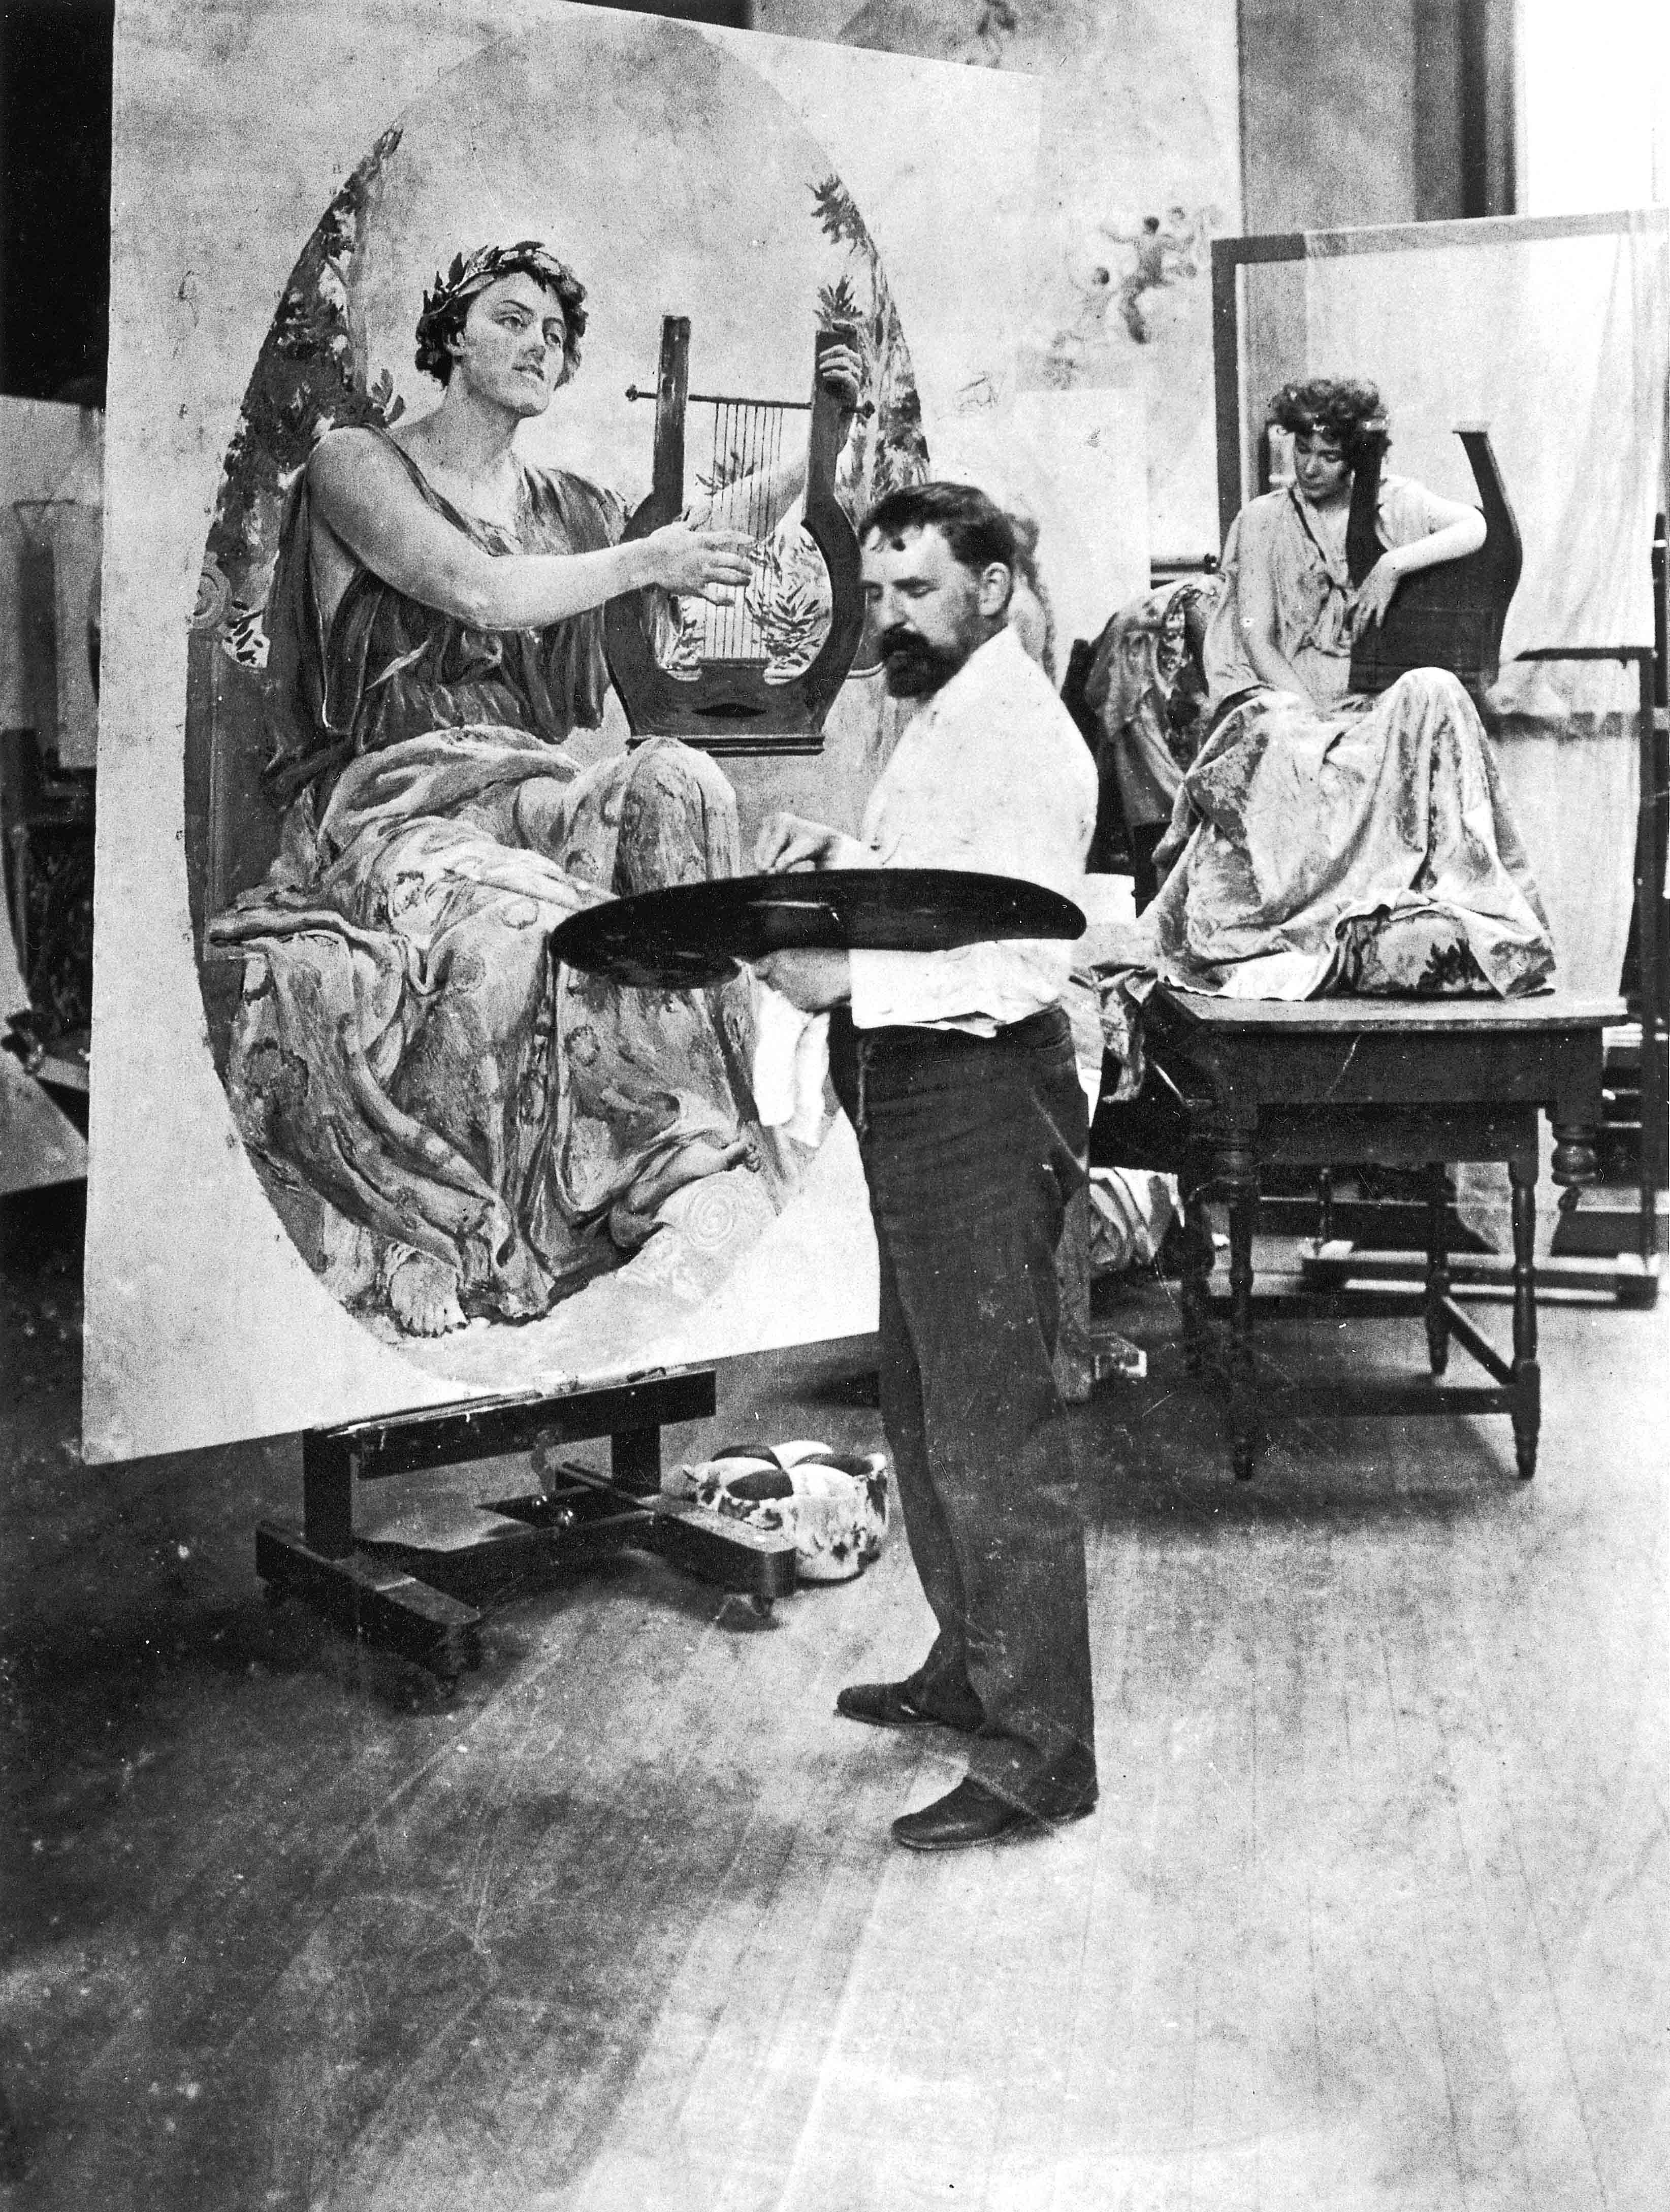 Will Low working on a Canvas in his art studio